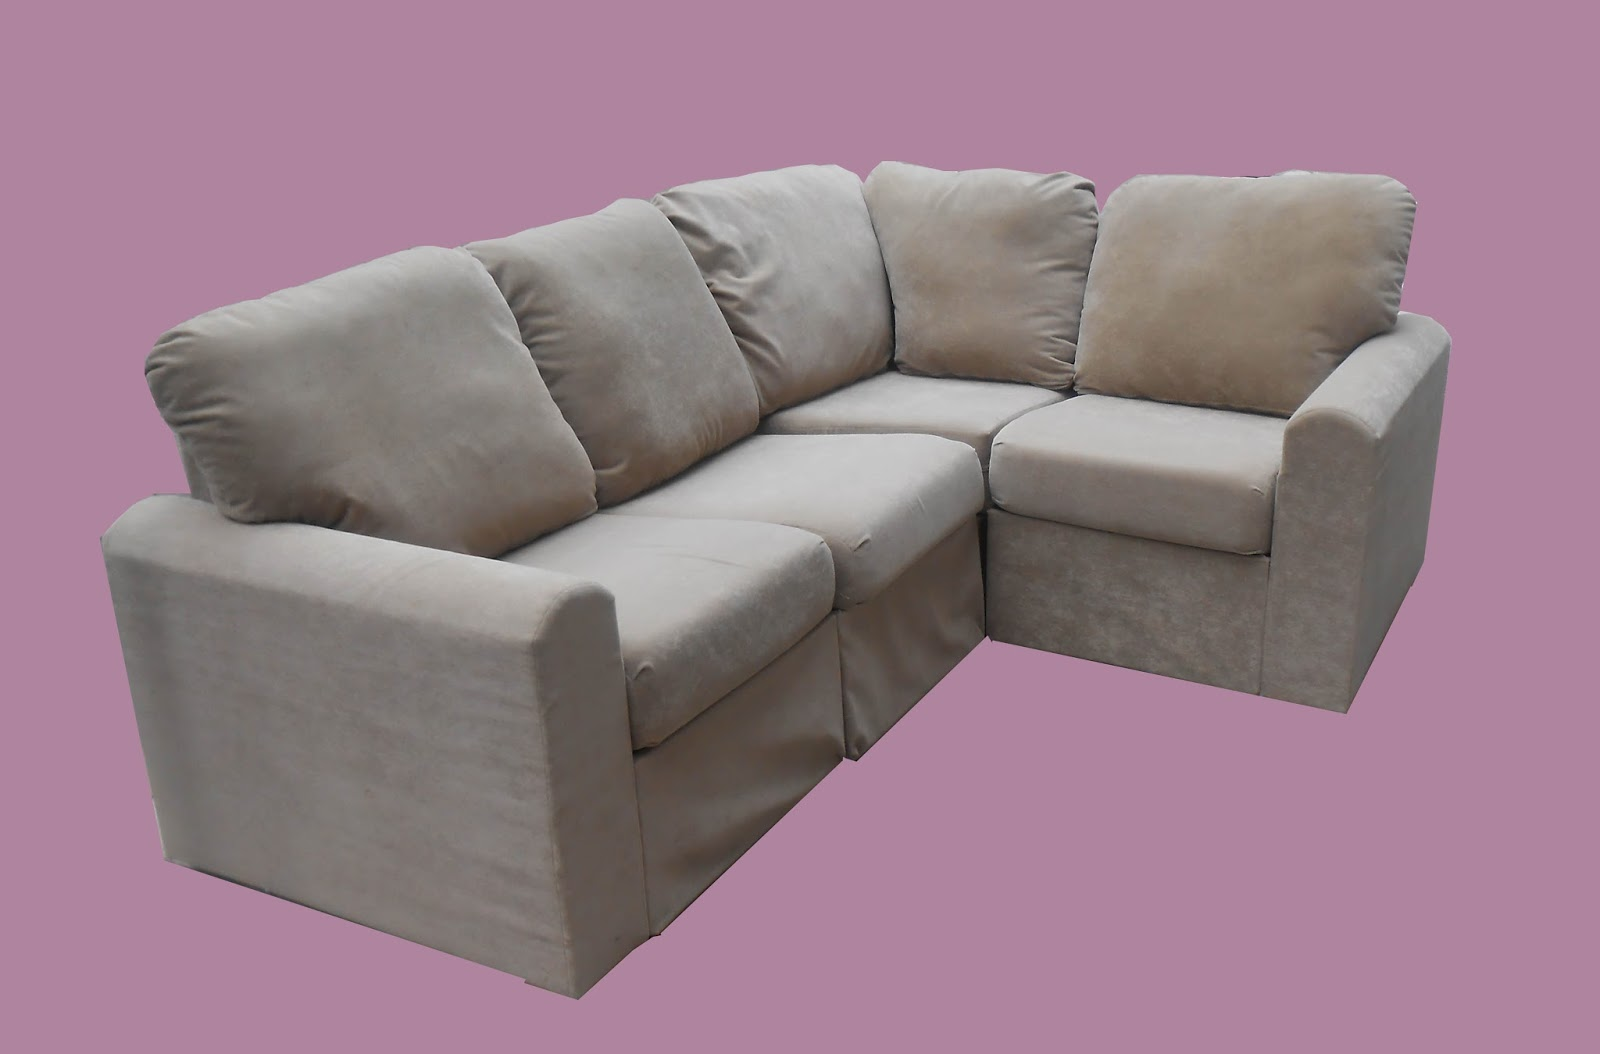 Small Modular Sofa Sectionals Diy Reupholster Bed Uhuru Furniture And Collectibles Sectional Sold